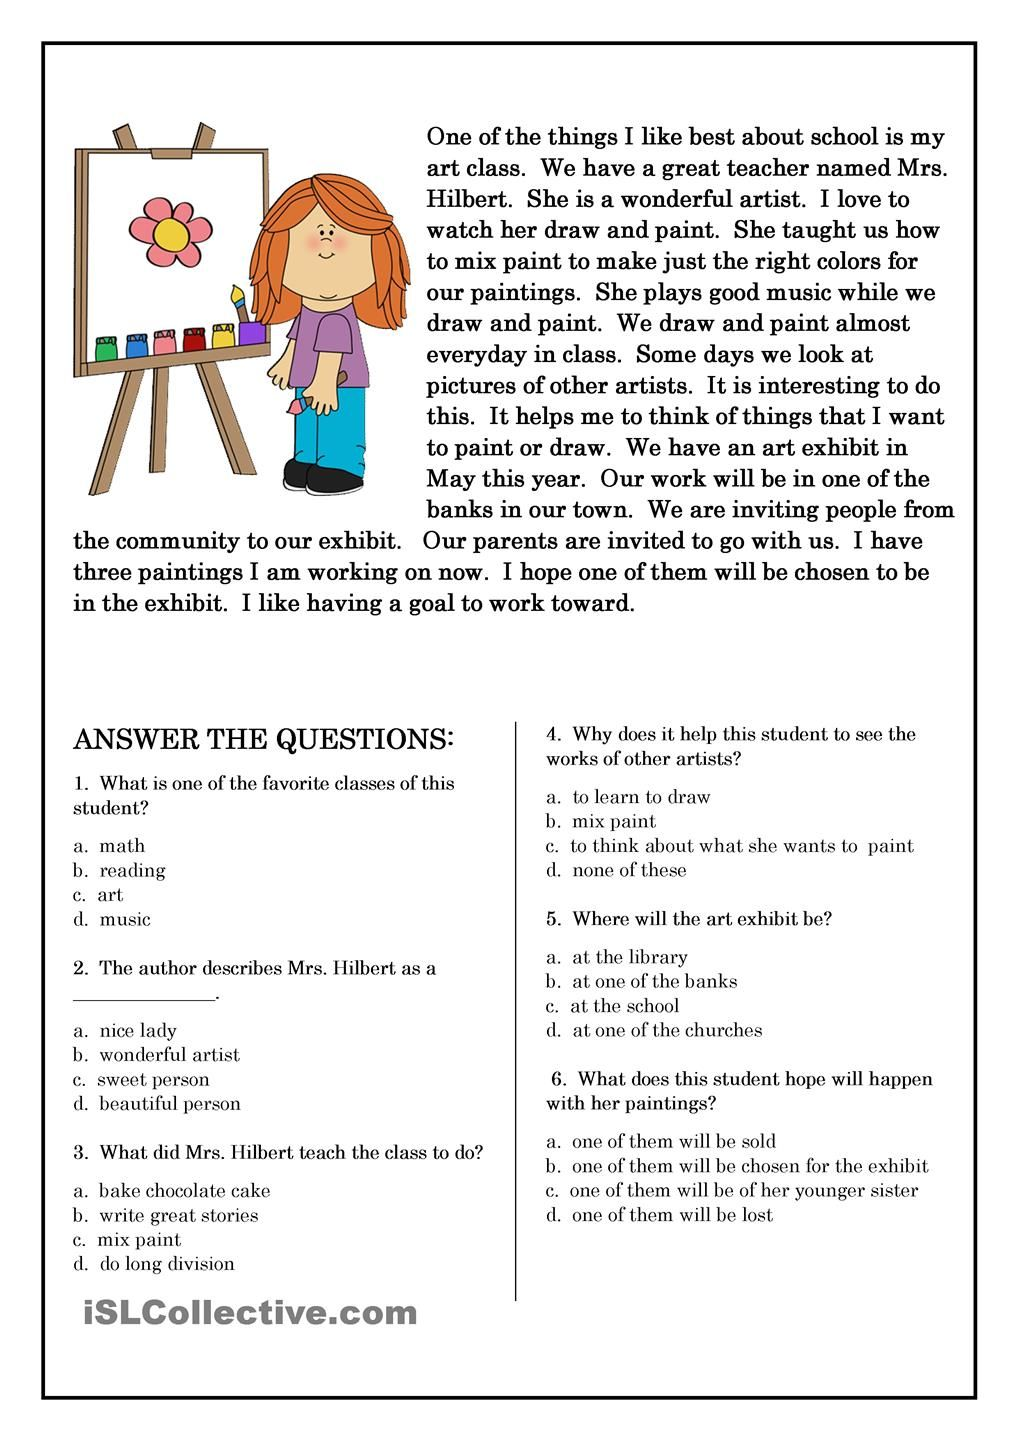 Worksheet Printable Comprehension Passages For Grade 3 1000 images about reading comprehension on pinterest and worksheets